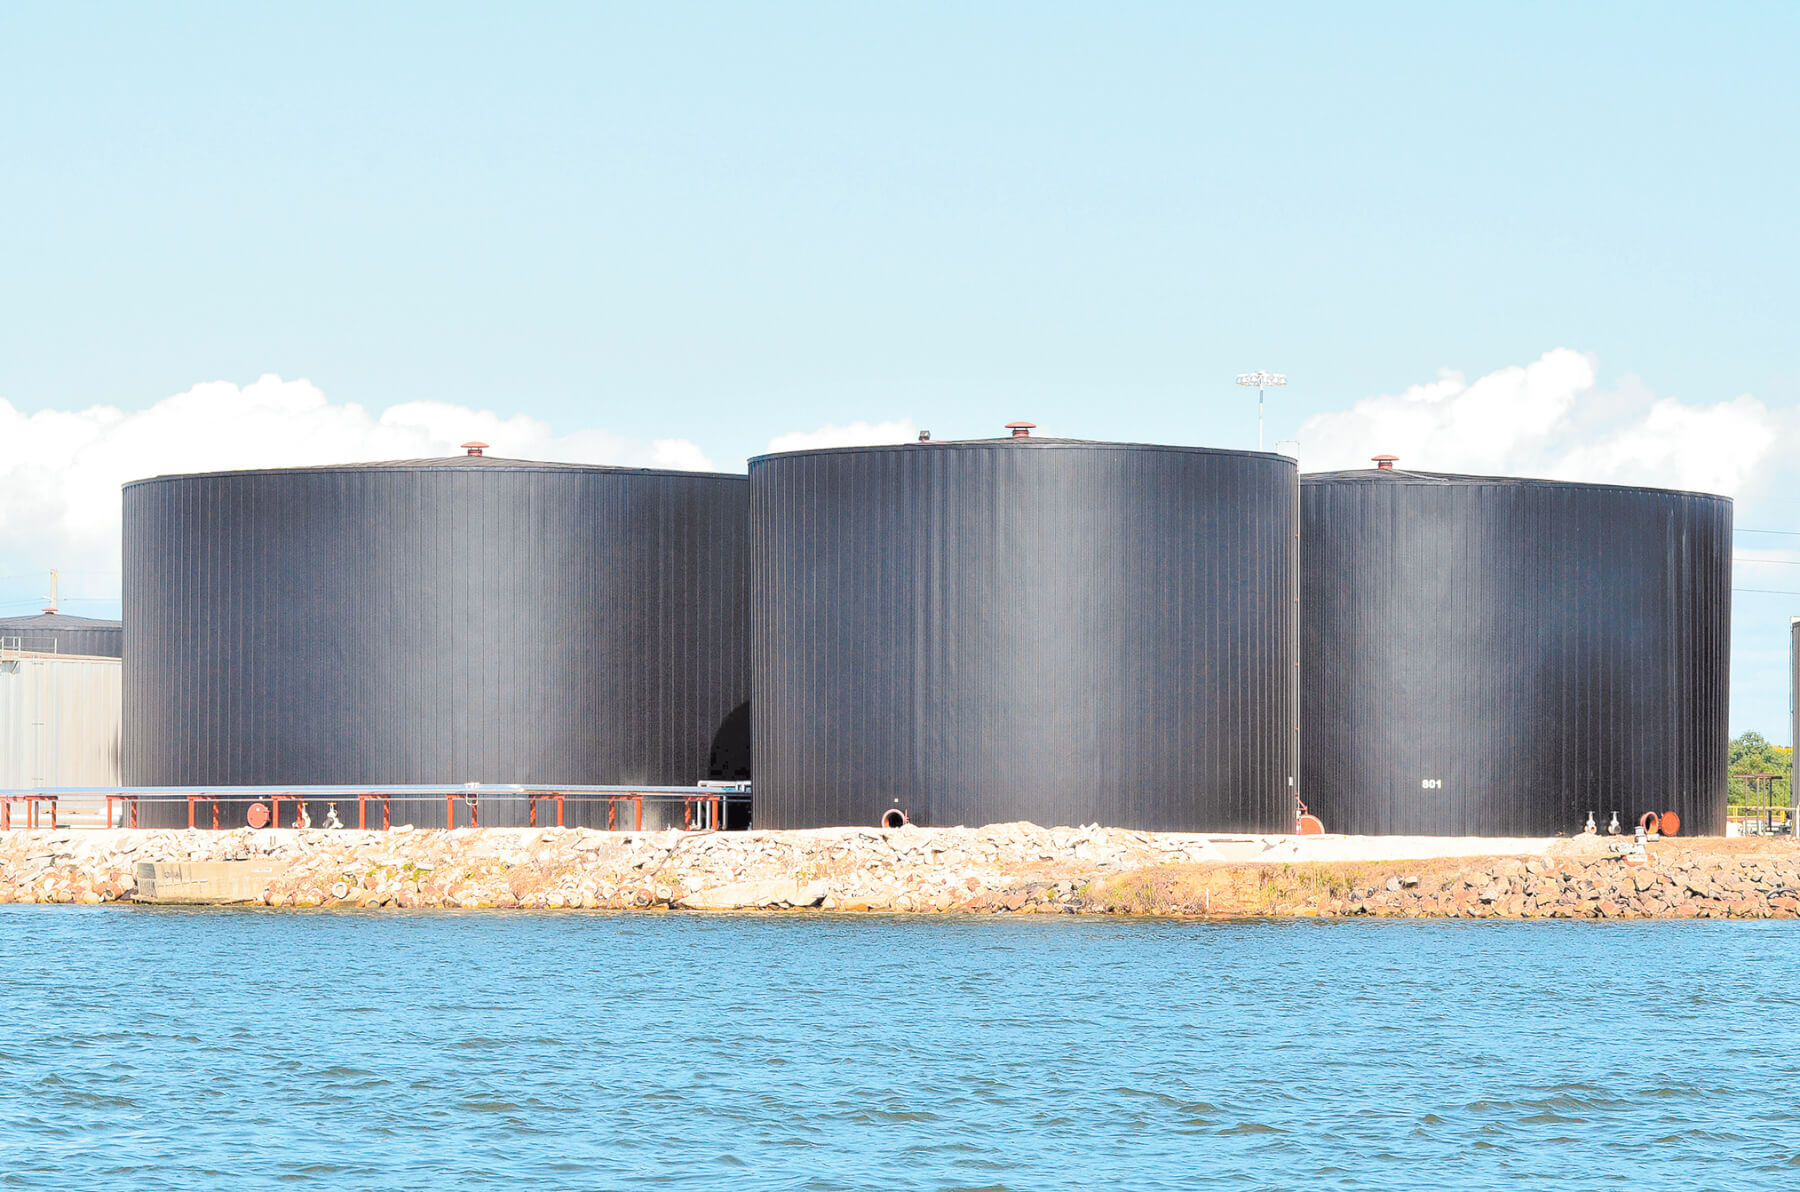 Oil storage discussion spills over into second day of public comment